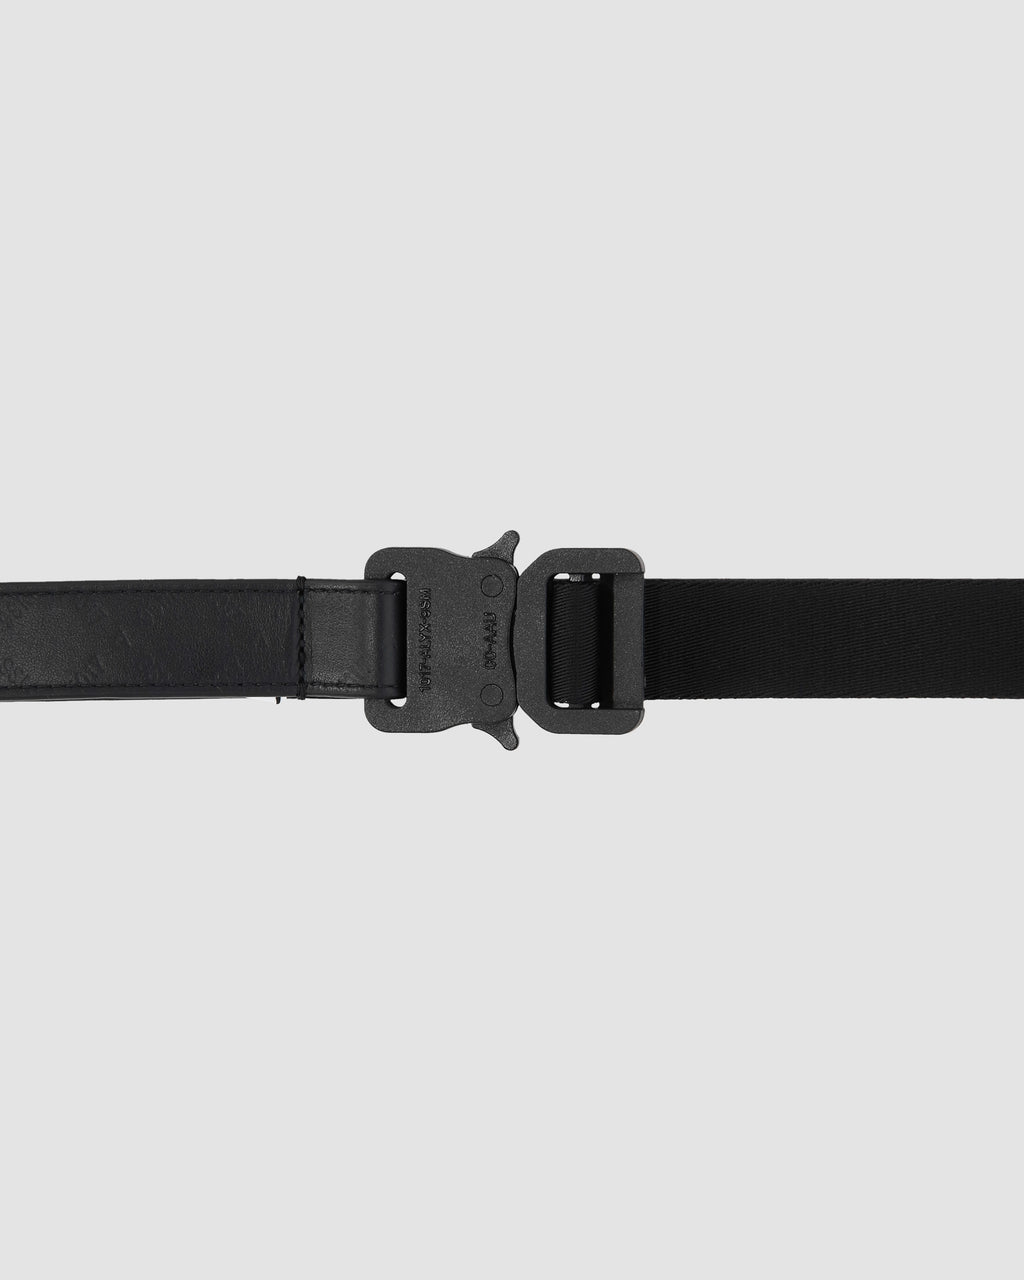 1017 ALYX 9SM | MONOGRAM MEDIUM ROLLERCOASTER BELT | Belt | Accessories, Belt, Black, F19, Man, Woman